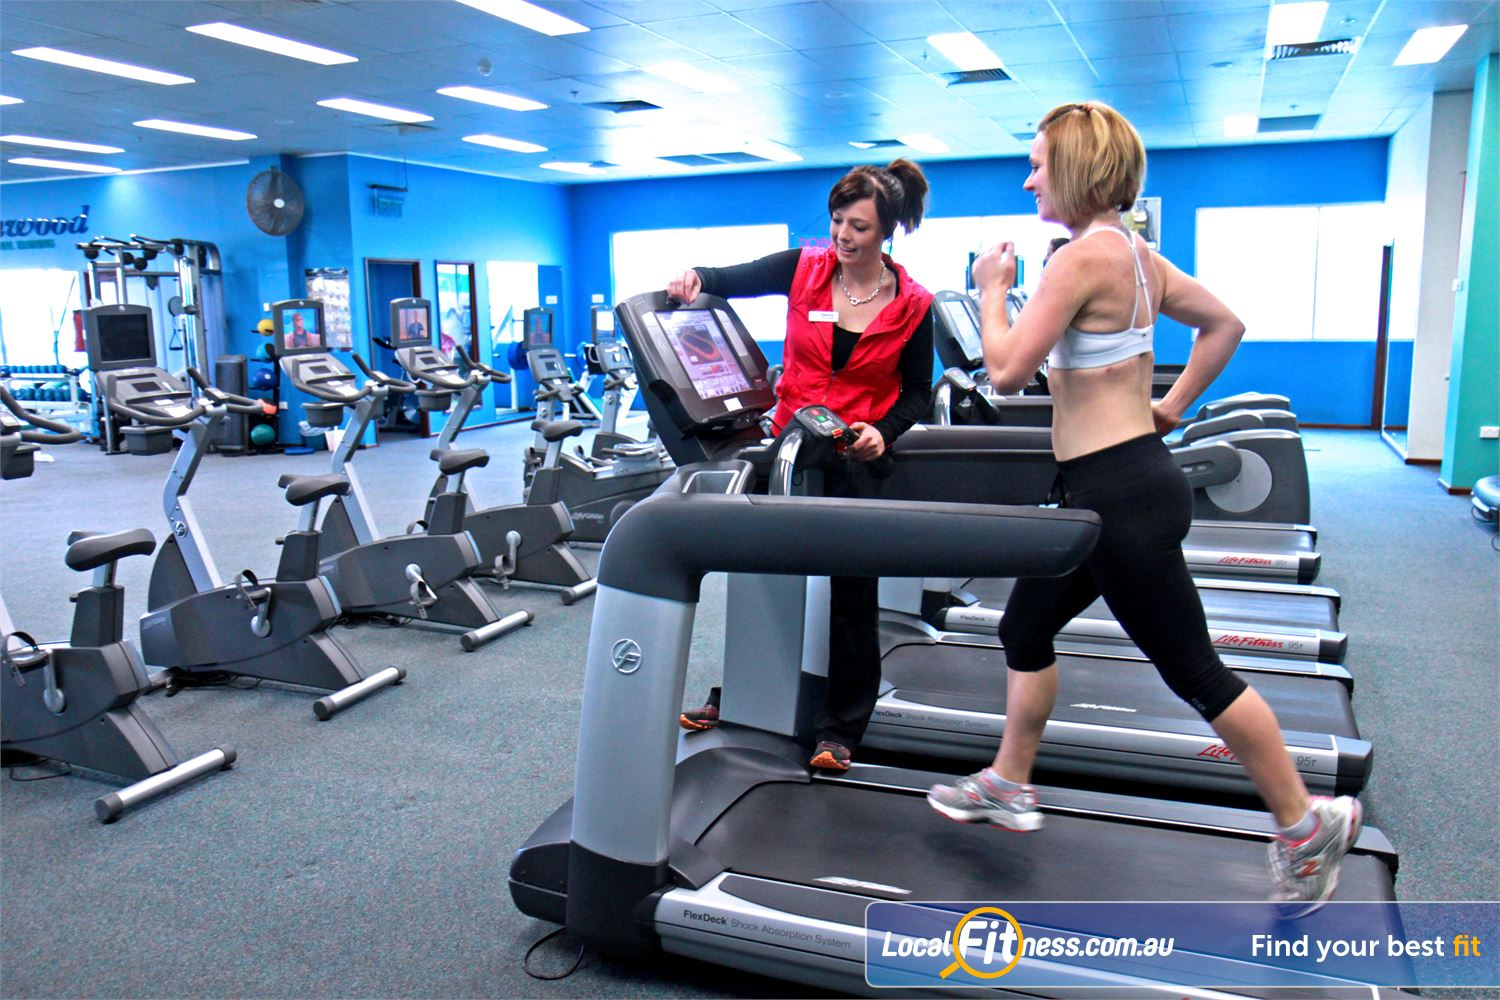 Fernwood Fitness Near Franklin Luxury training with personal entertainment units on each machine.